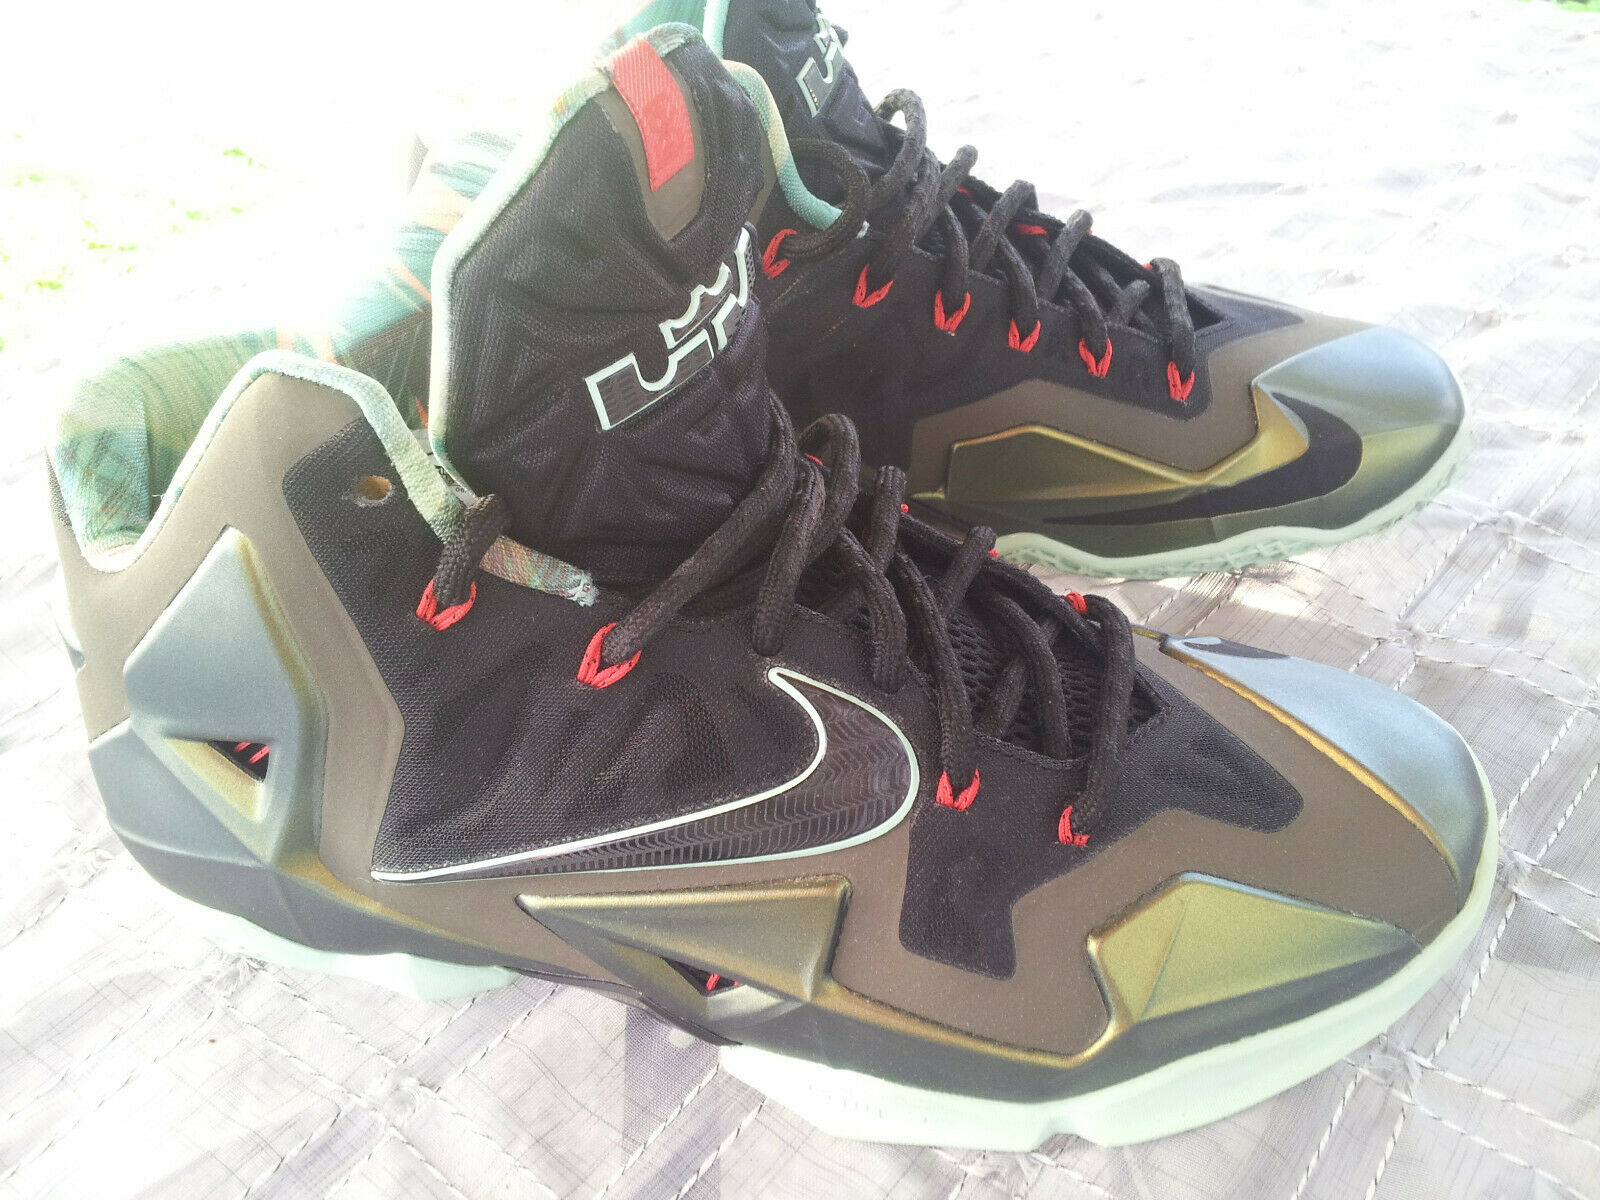 NIKE Lebron KINGS PRIDE 11 Parachute gold Sneakers Basketball shoes Mens Size 9